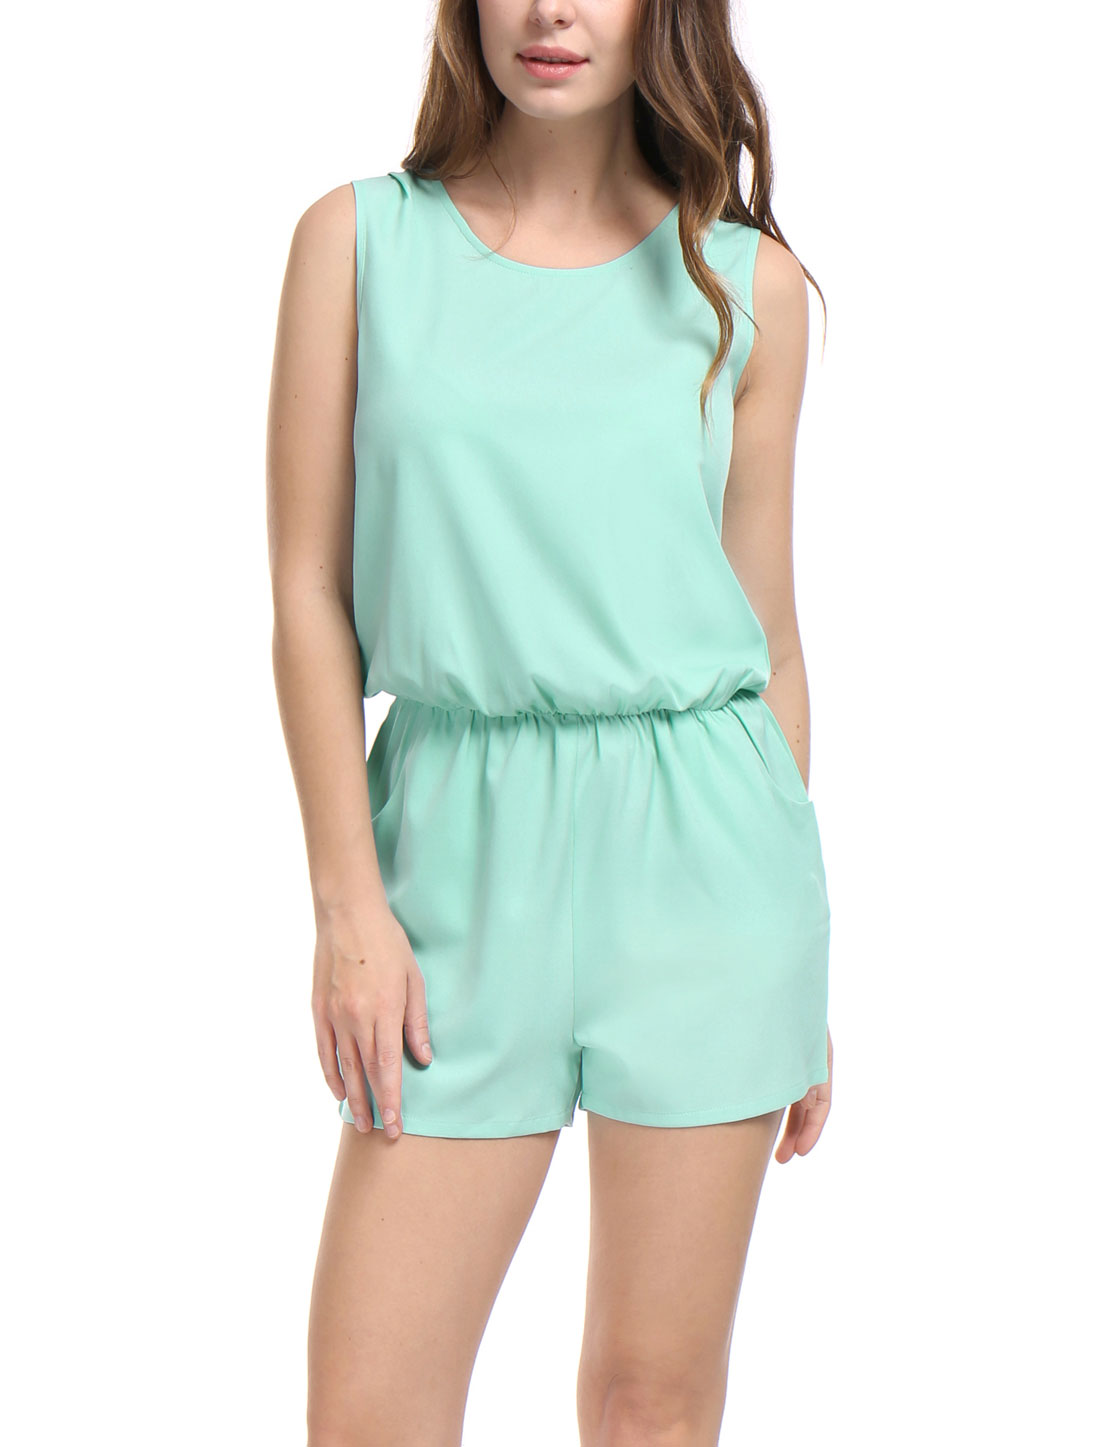 Women Sleeveless Cut Out Back Elastic Waist Romper Green XS